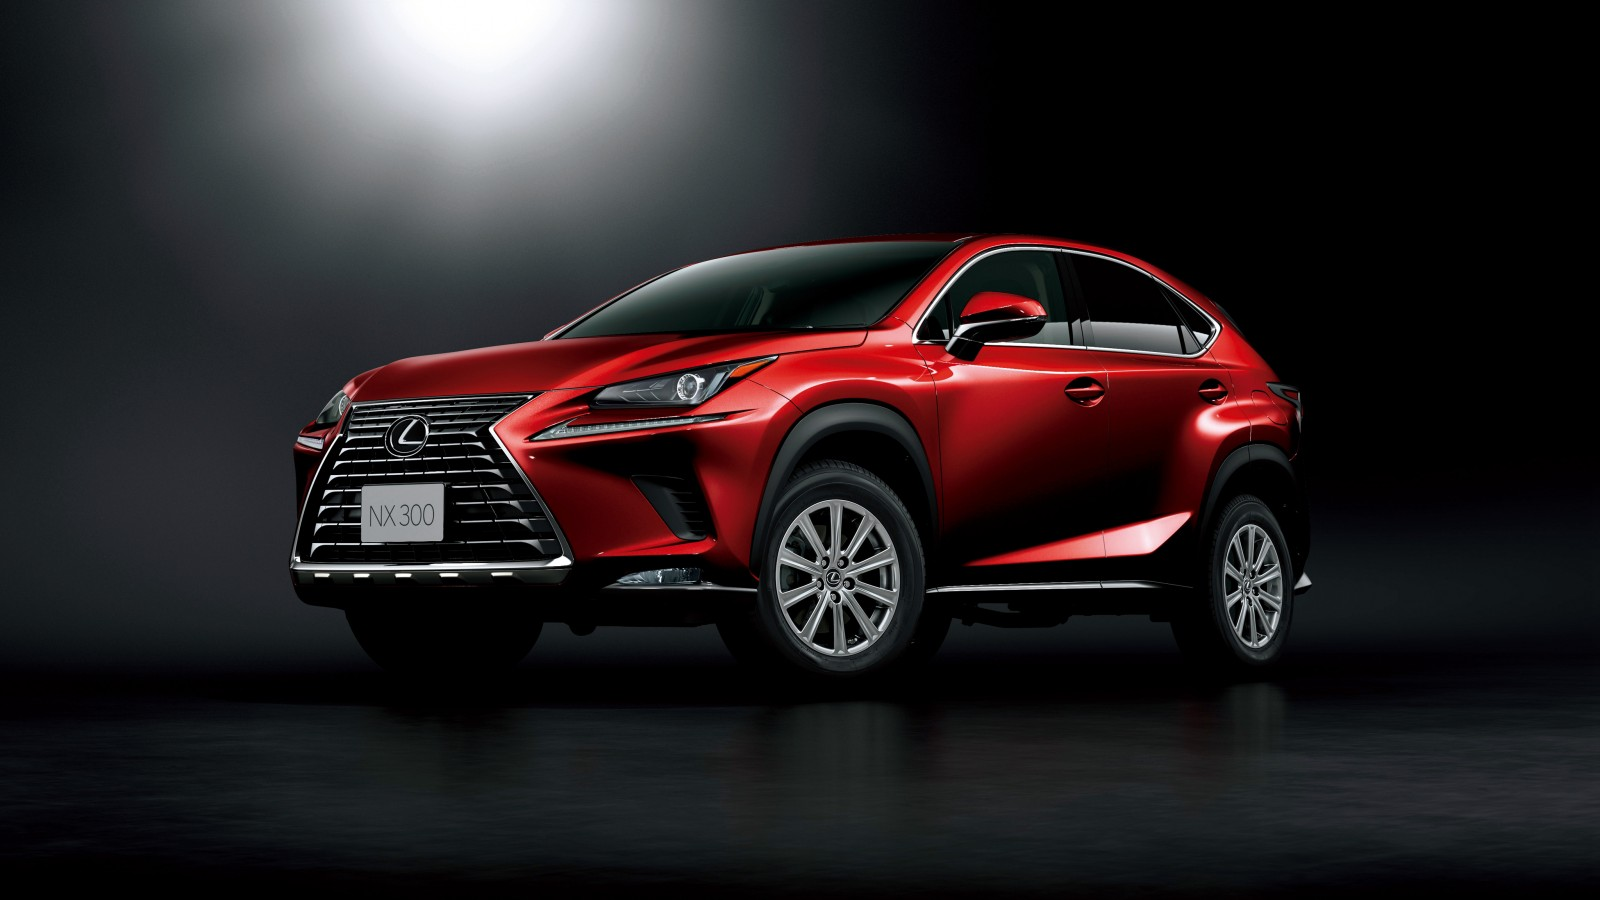 2018 Lexus Nx 300 4k Wallpaper Hd Car Wallpapers Id 8675